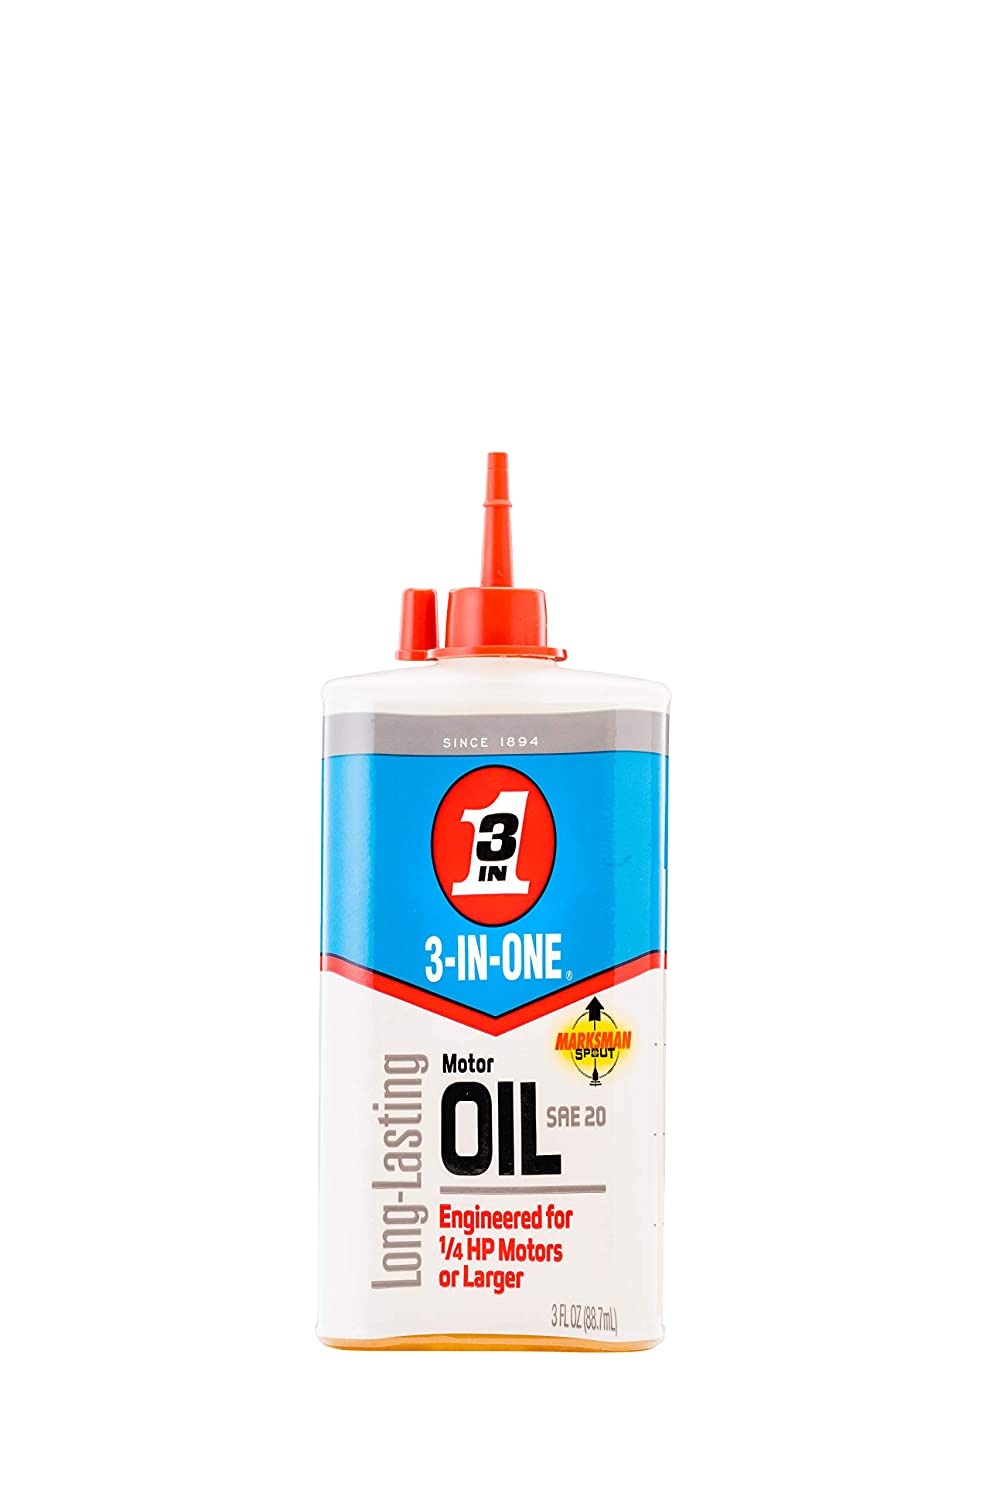 3-IN-ONE Motor Oil, 3 OZ